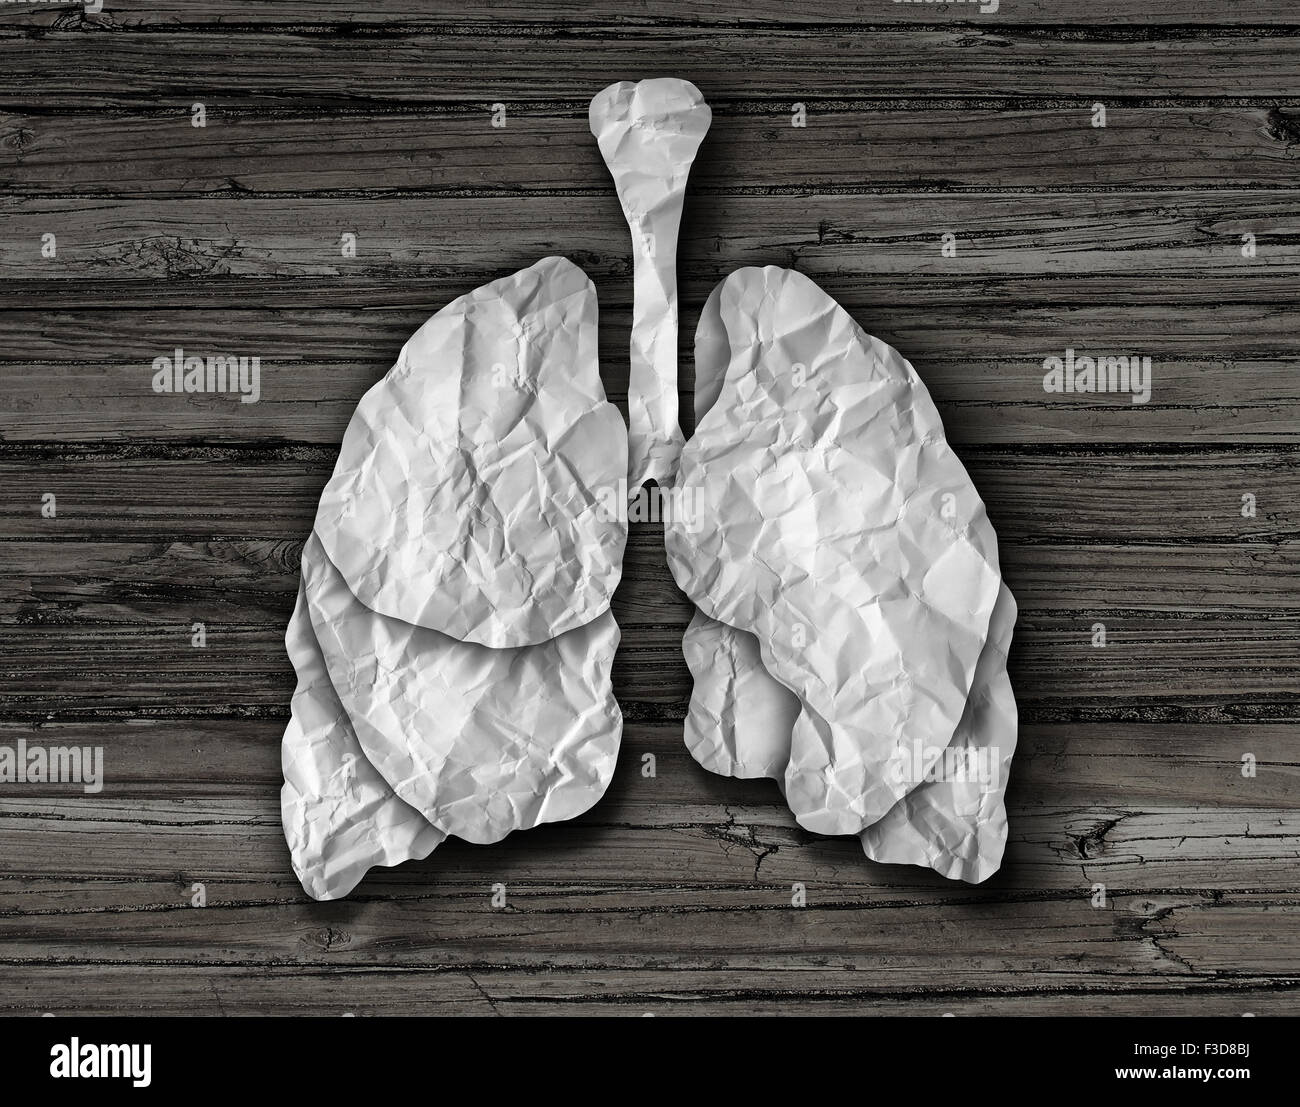 Human lung concept or healthy lungs organ made of cut crumpled white paper on an old wood background representing - Stock Image